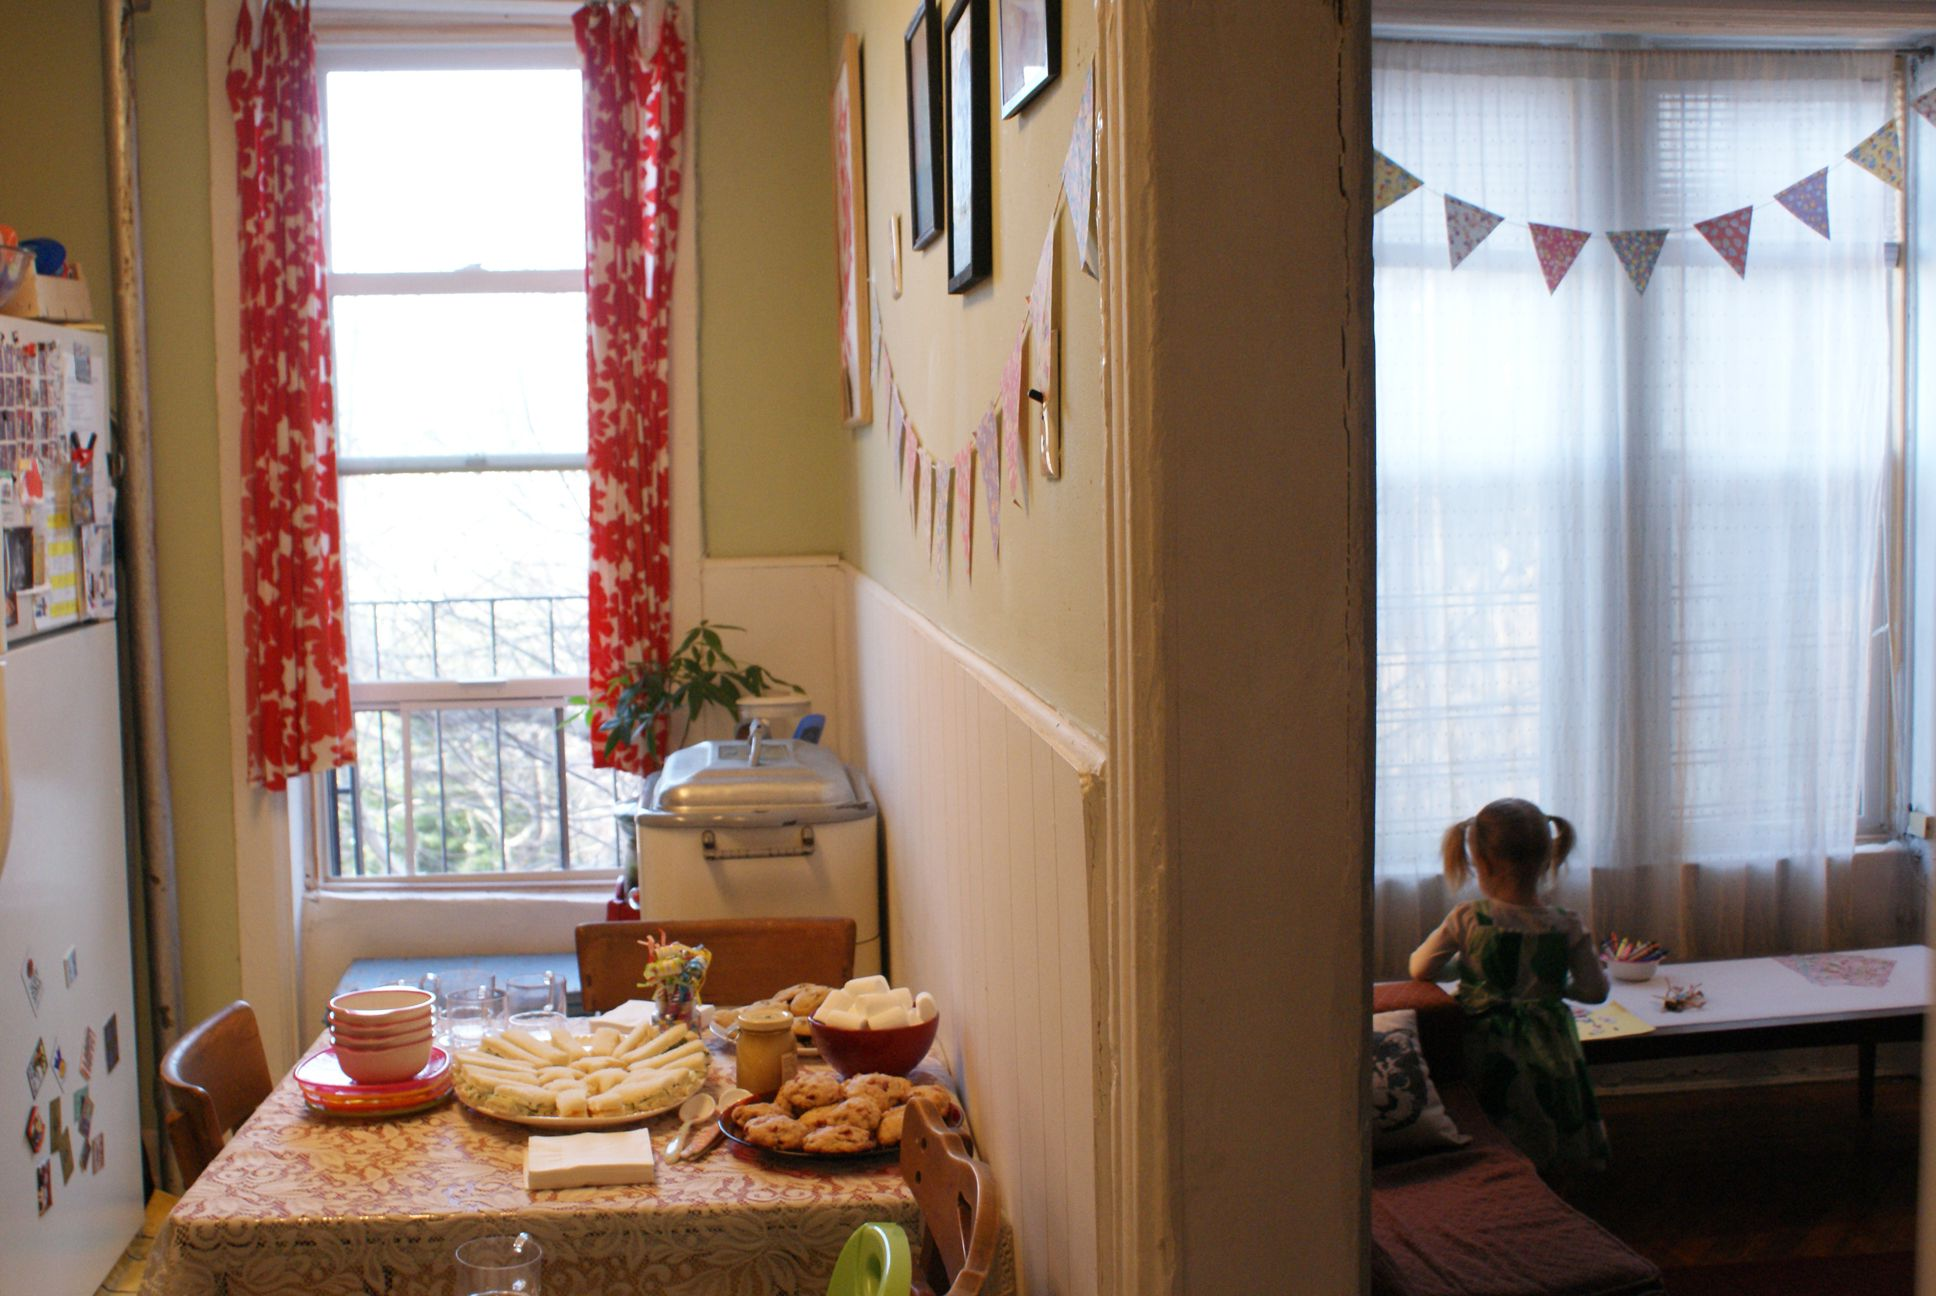 How to host a great kids 39 party in a small apartment - Raising a child in a one bedroom apartment ...